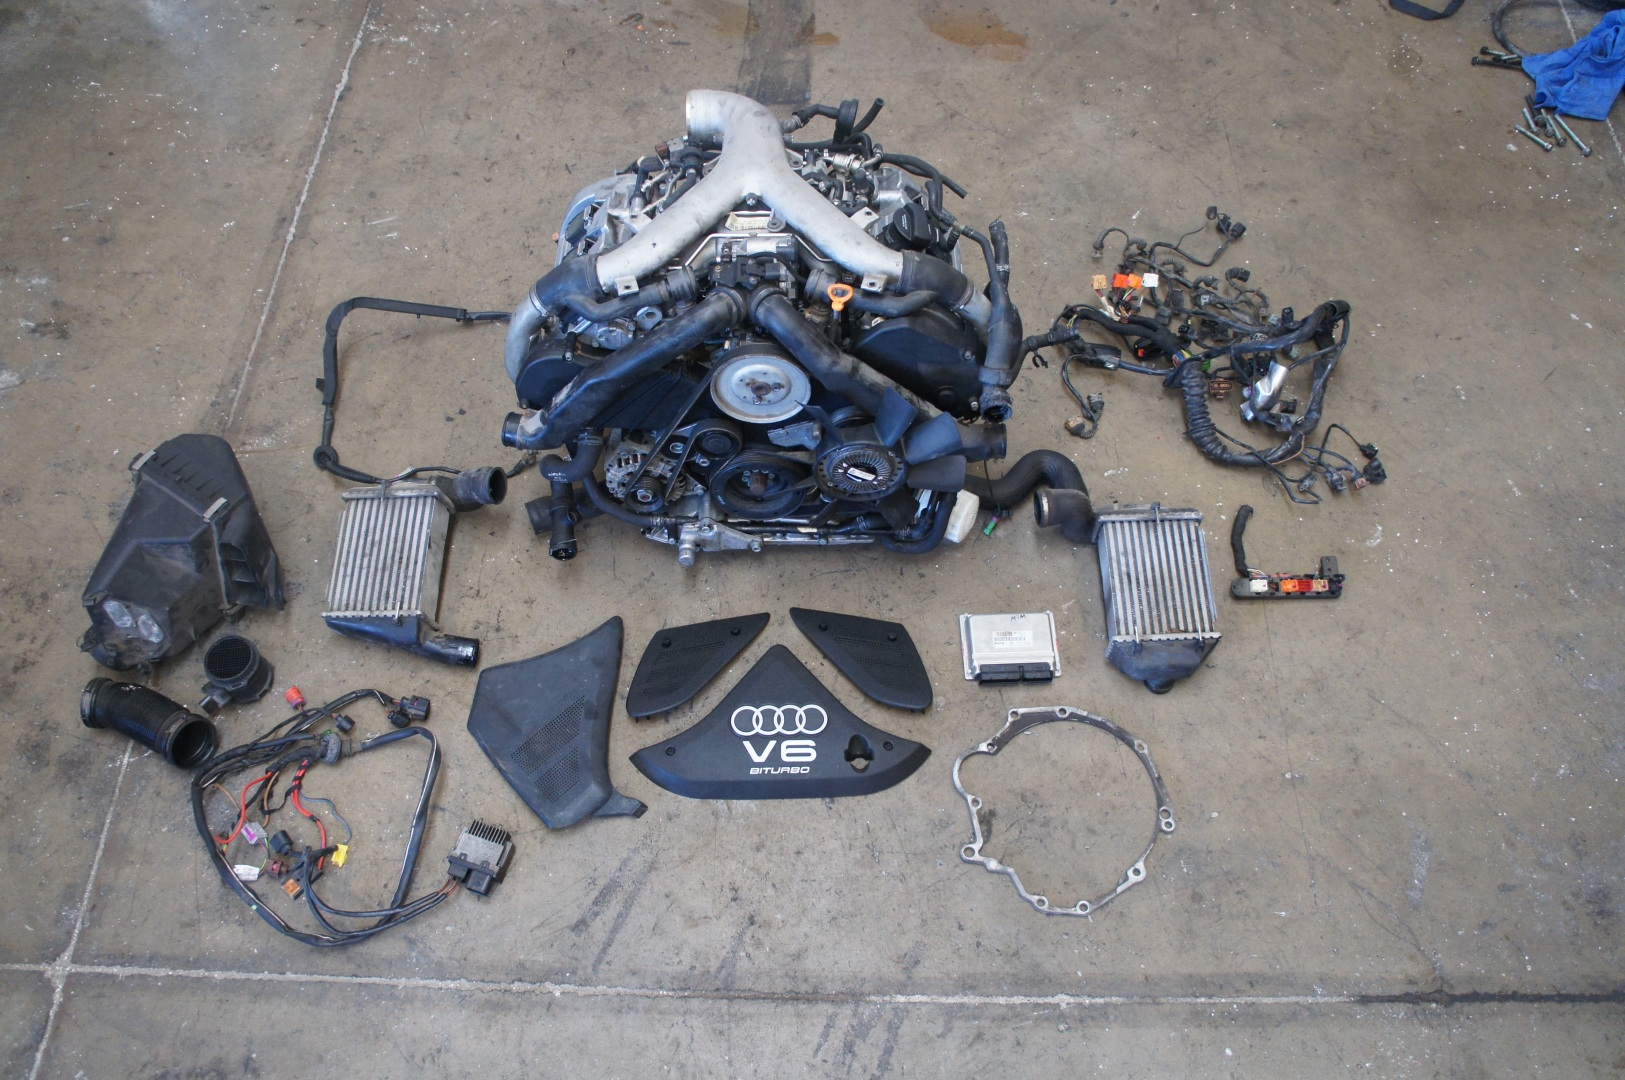 Audi B6 B7 A4 S4 27t Conversion Kit Wiring Harness Engine Scam N75 Boost Valve O2 Oil Level Pressure Intake Temp Coolant Etc Motor Mounts Turbos If Selected At Checkout All Turbo And Lines